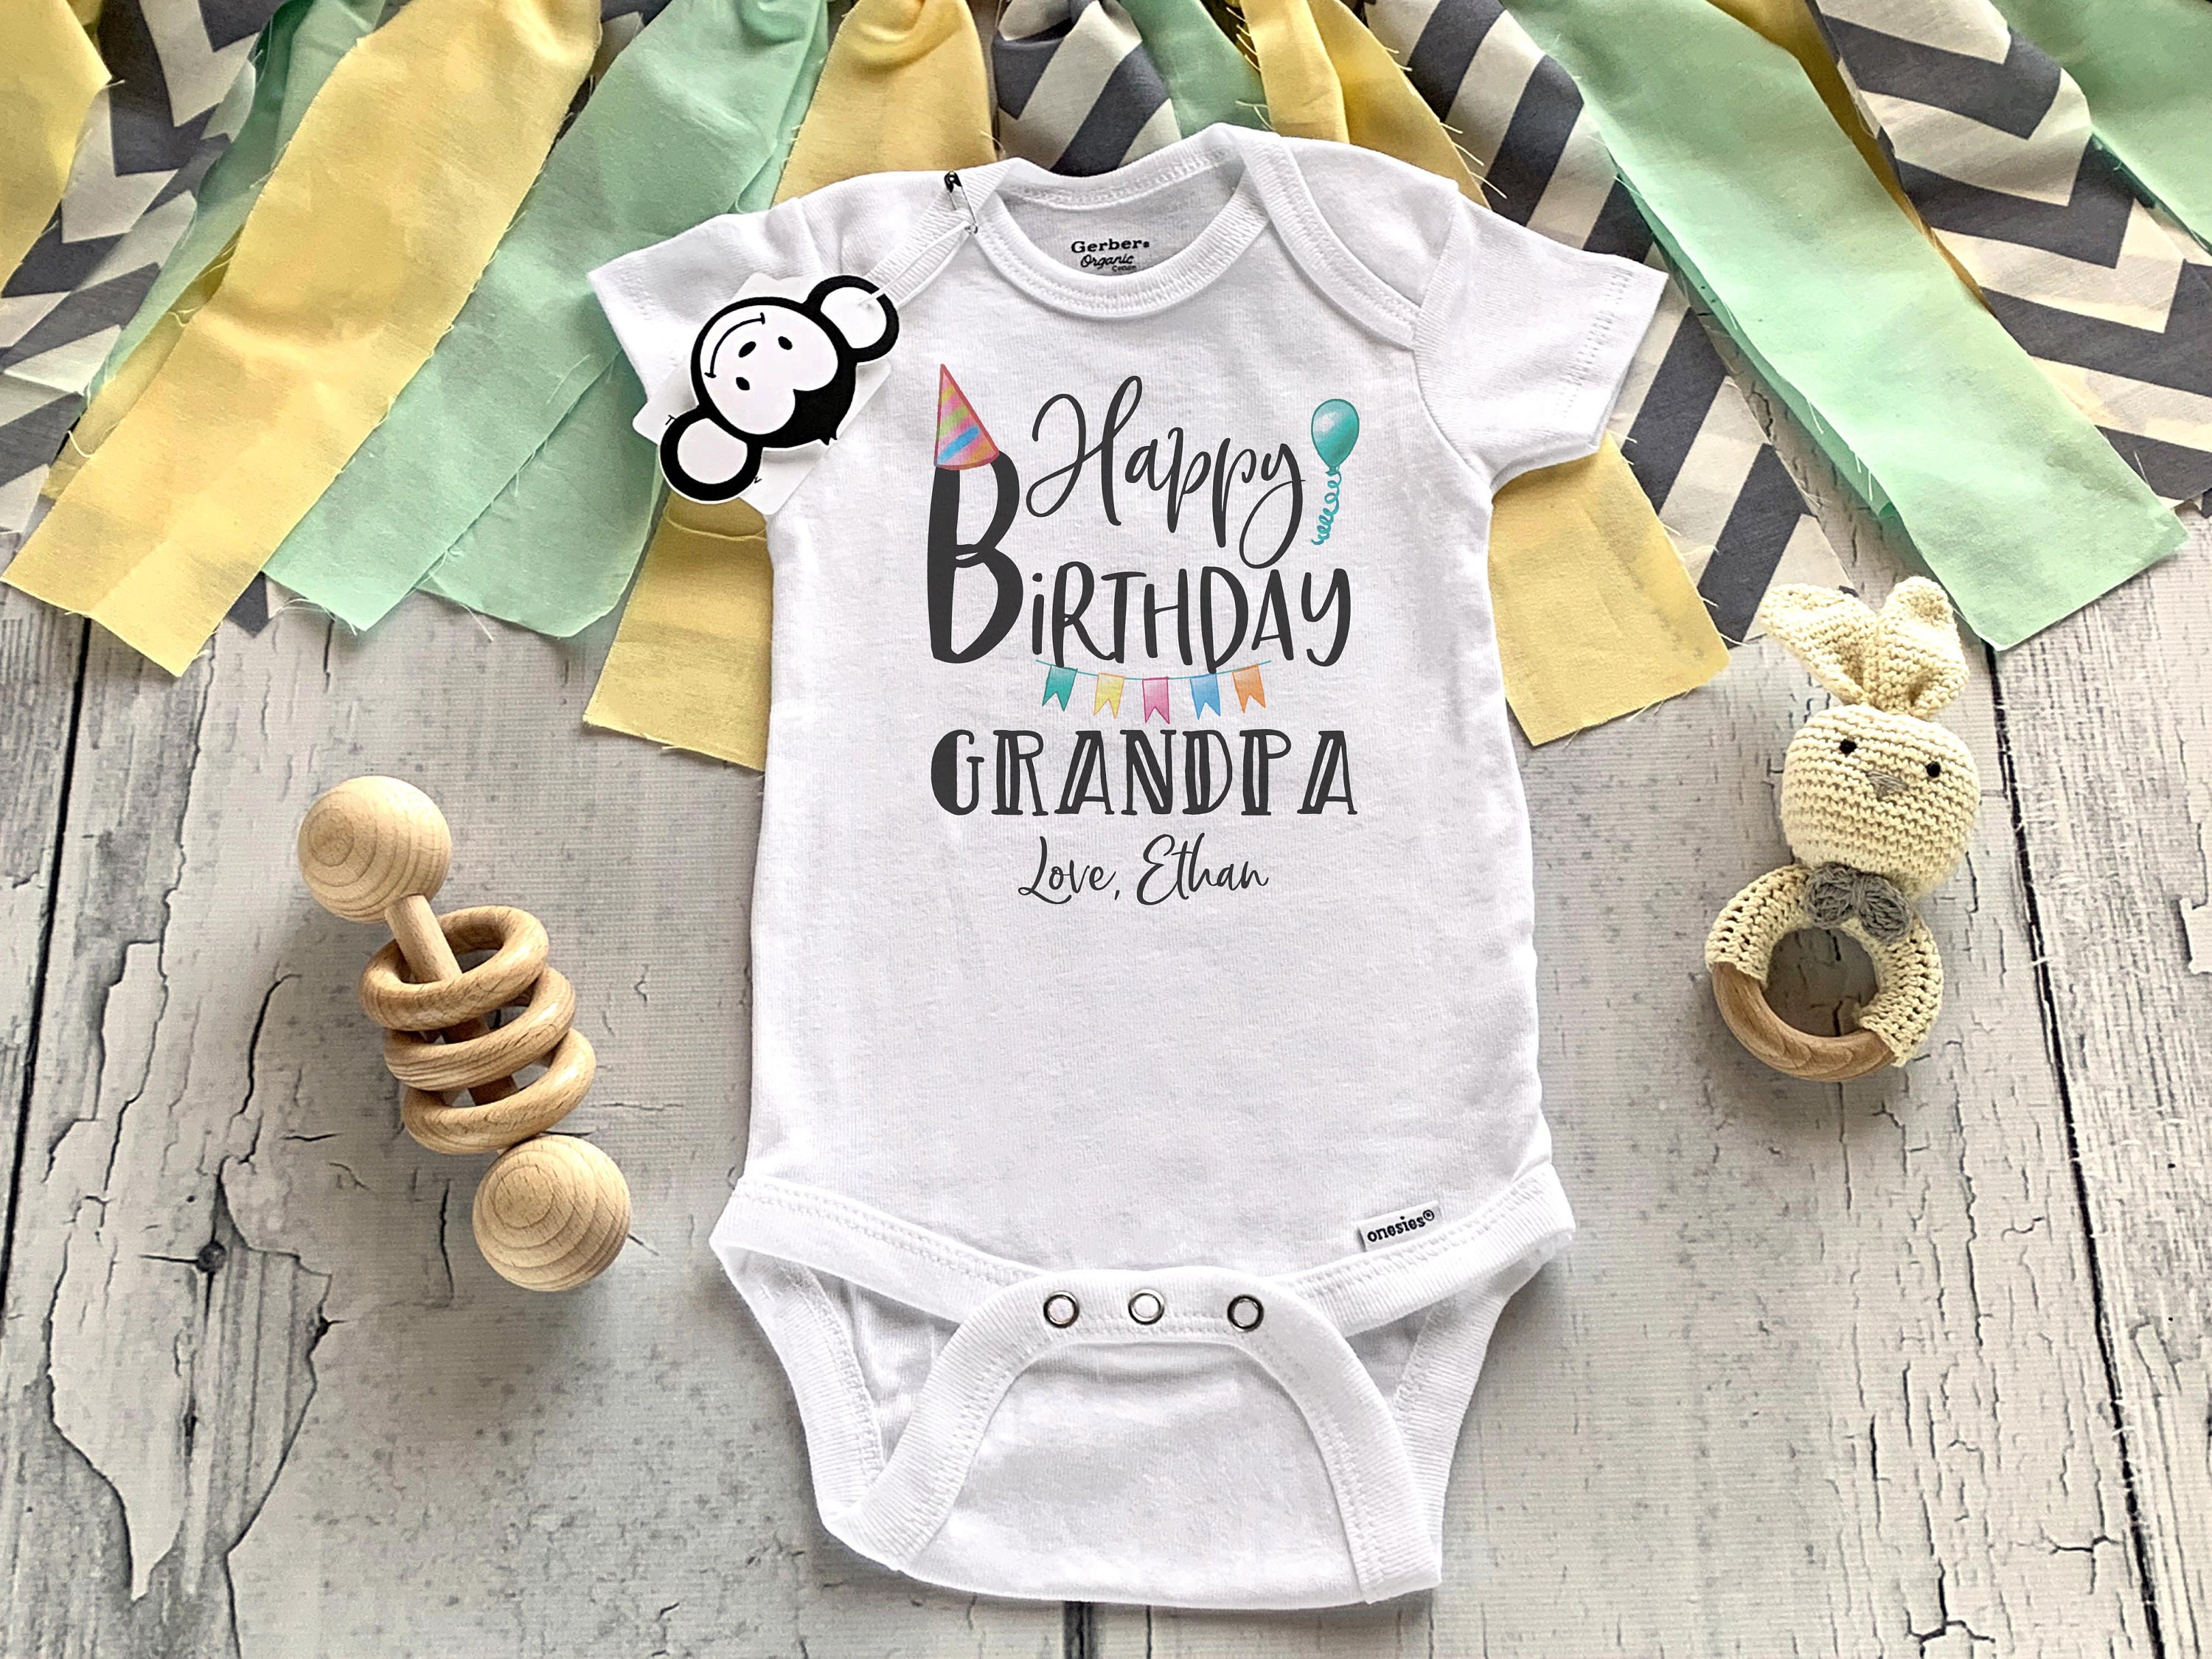 Gift from Baby to Grandpa Personalized Birthday bodysuit for Grandpa Personalized Happy Birthday Grandpa Onesie\u00ae with Name